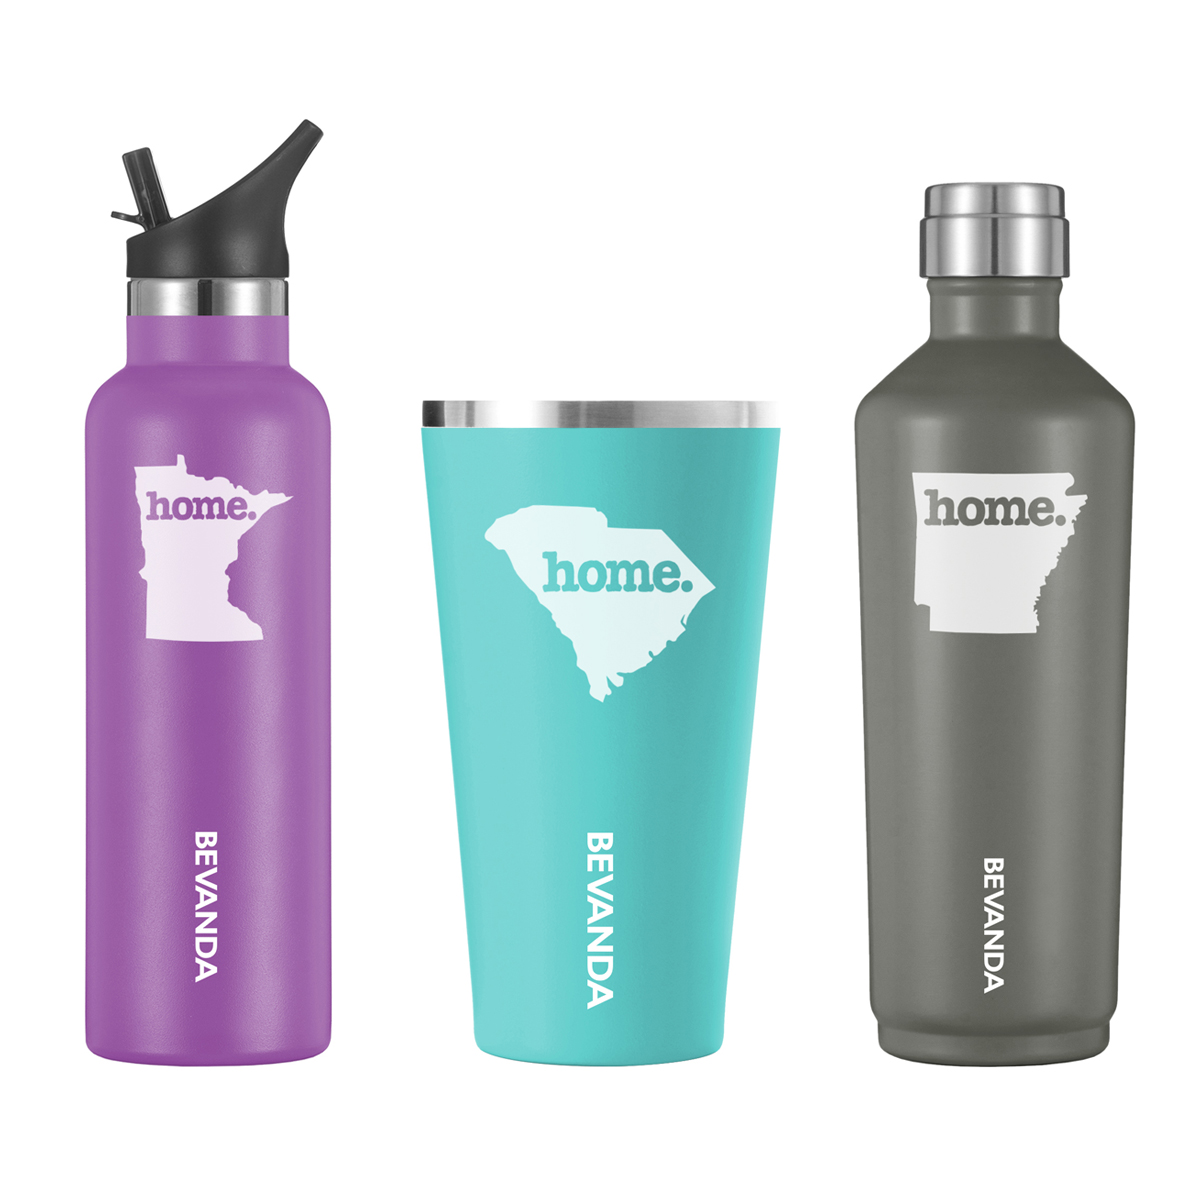 corporate-gifts-bevanda-products.jpg